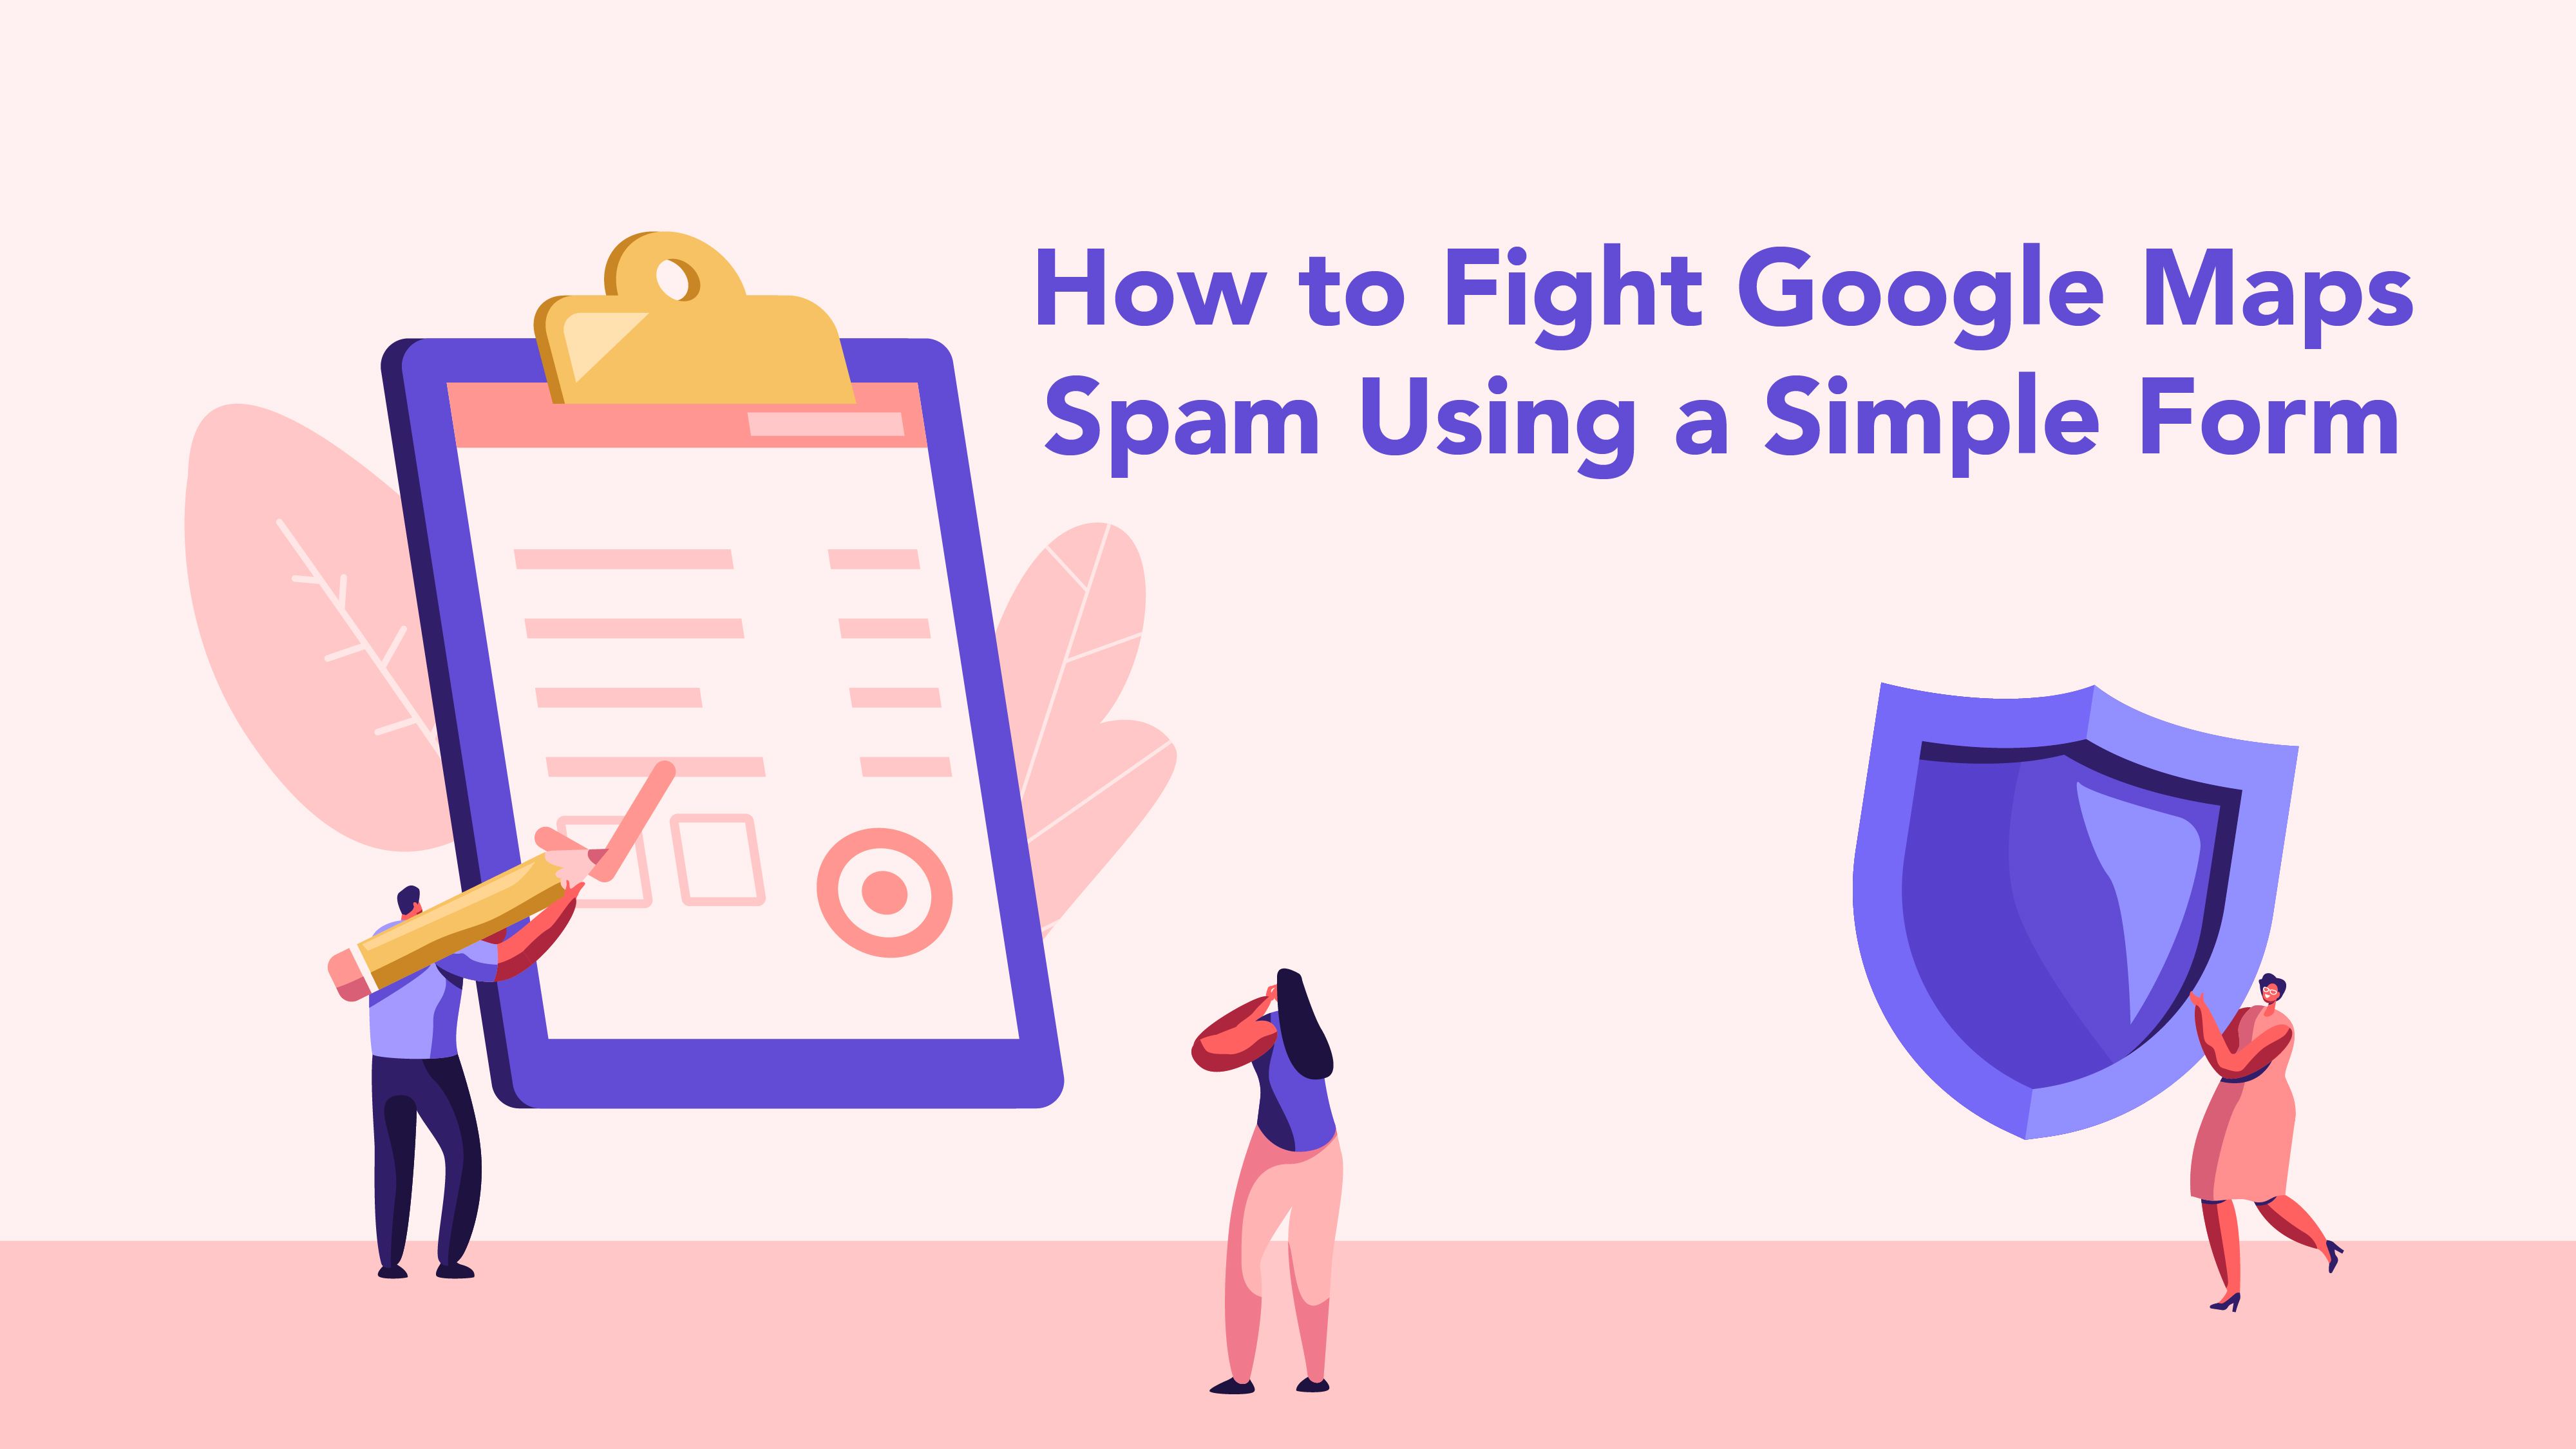 How to Fight Google Maps Spam Using a Simple Form